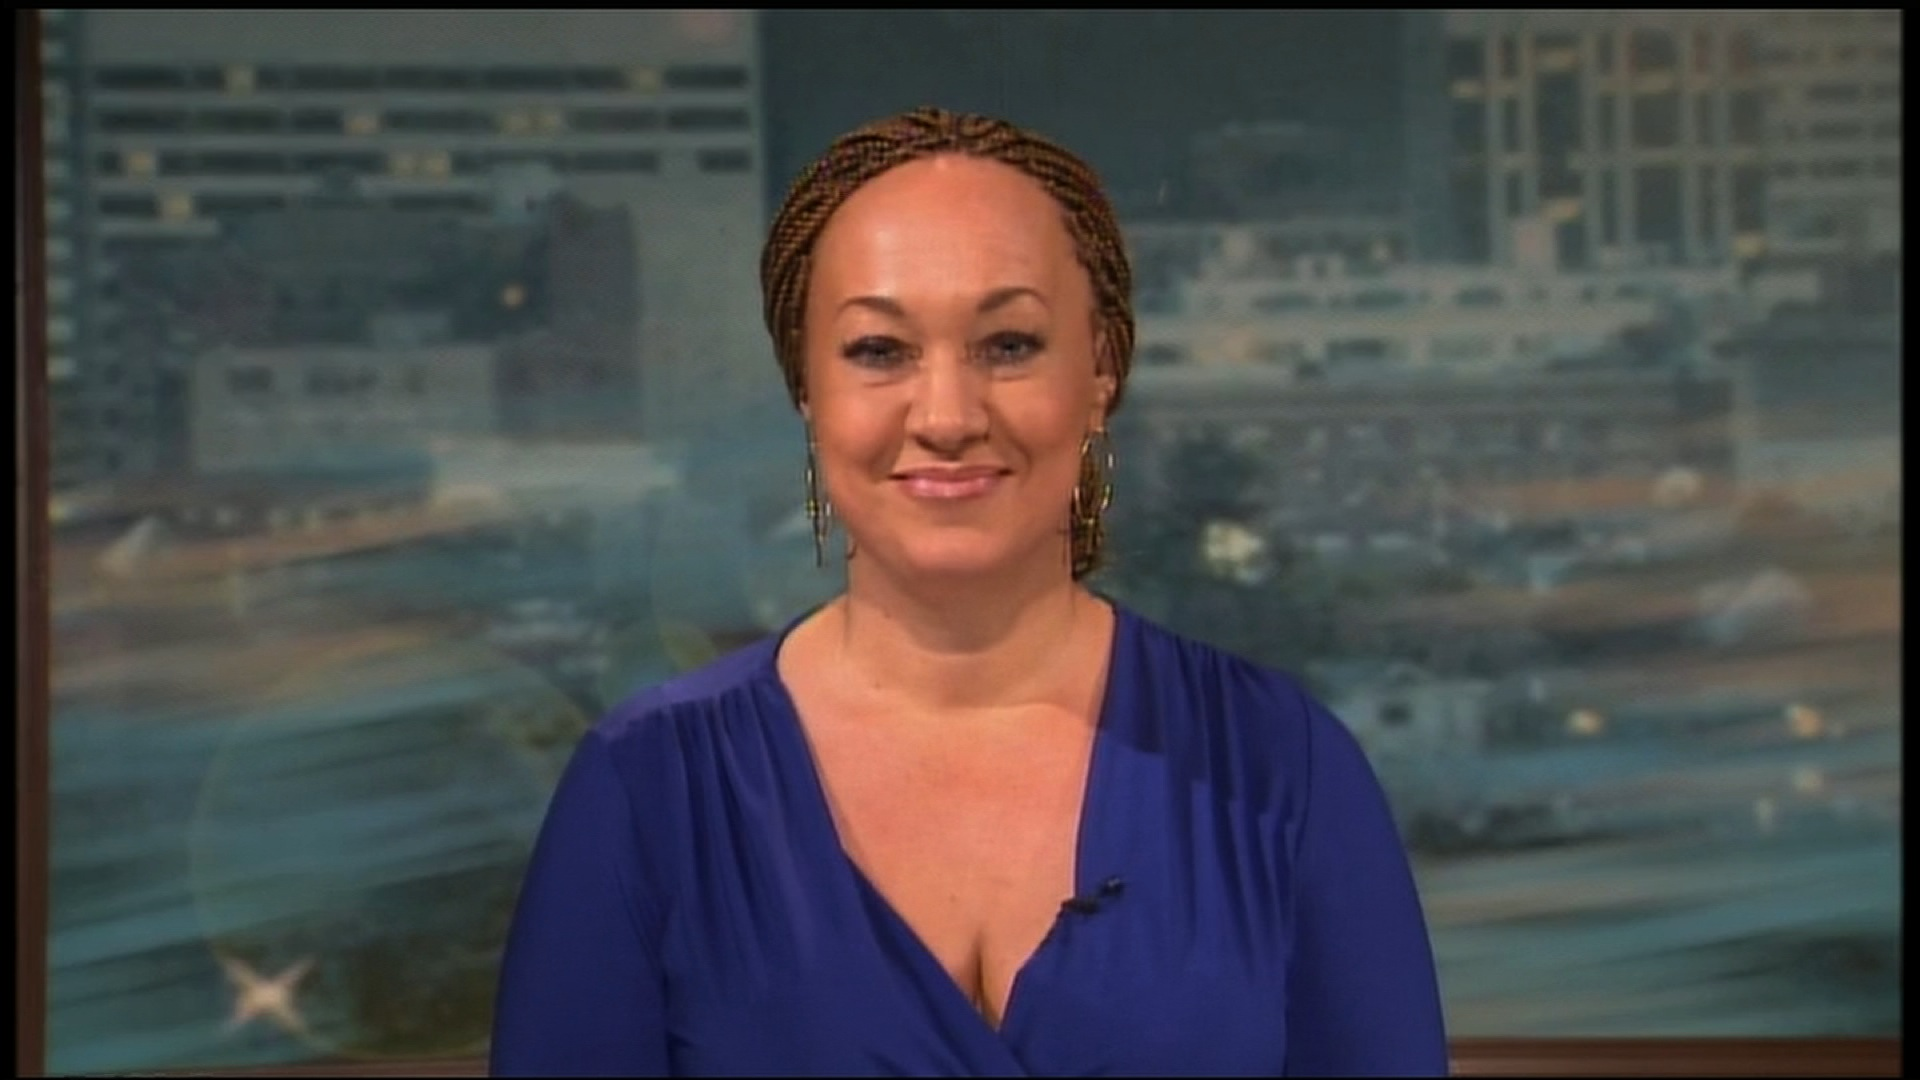 Rachel Dolezal speaks out on 2015 controversy - CNN Video